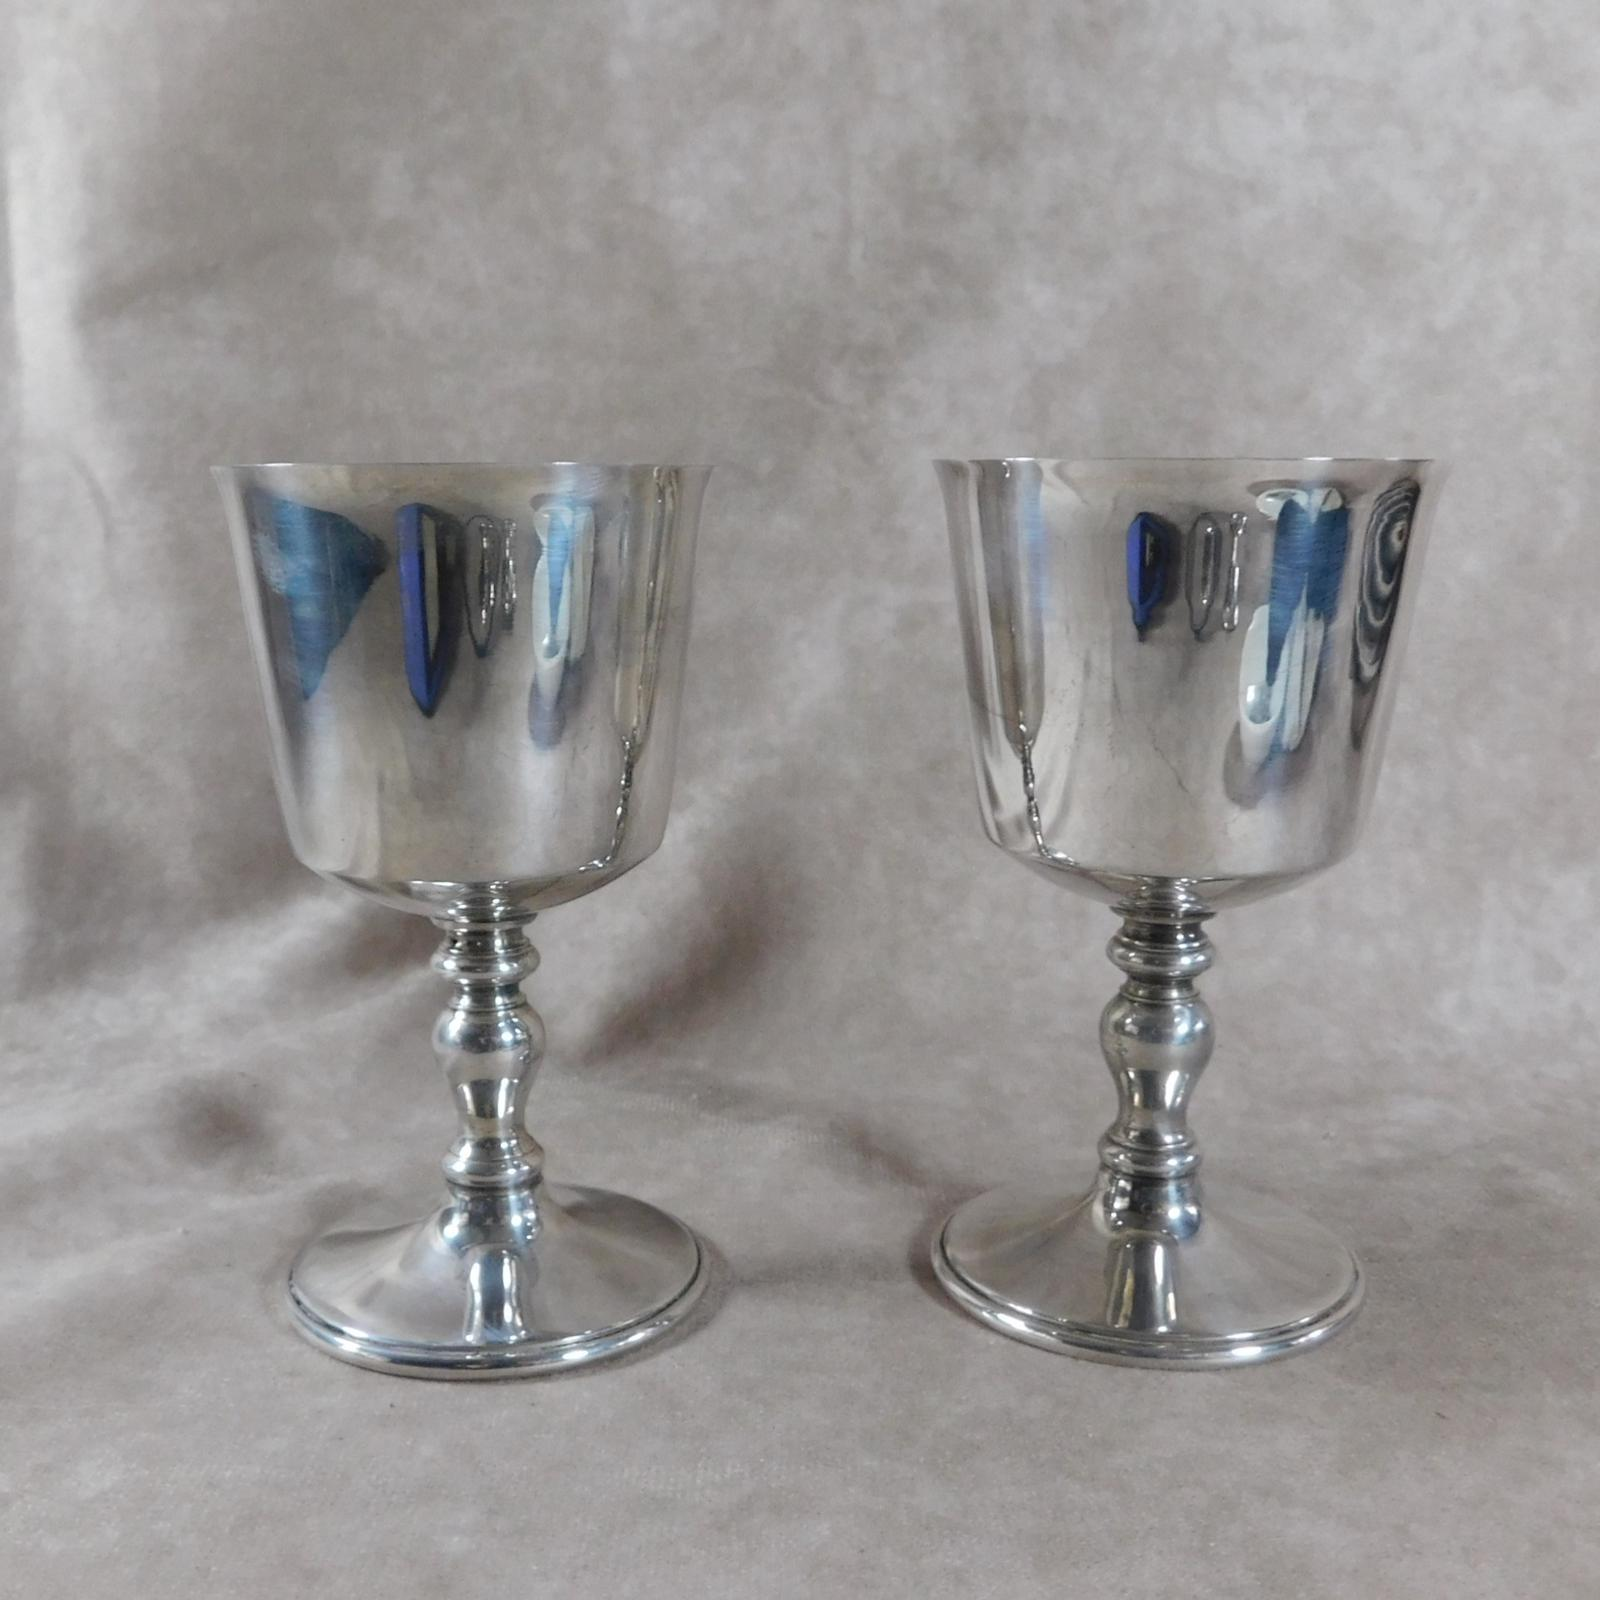 Pair of Silver Plated Goblets by Barker Ellis, England (1 of 1)